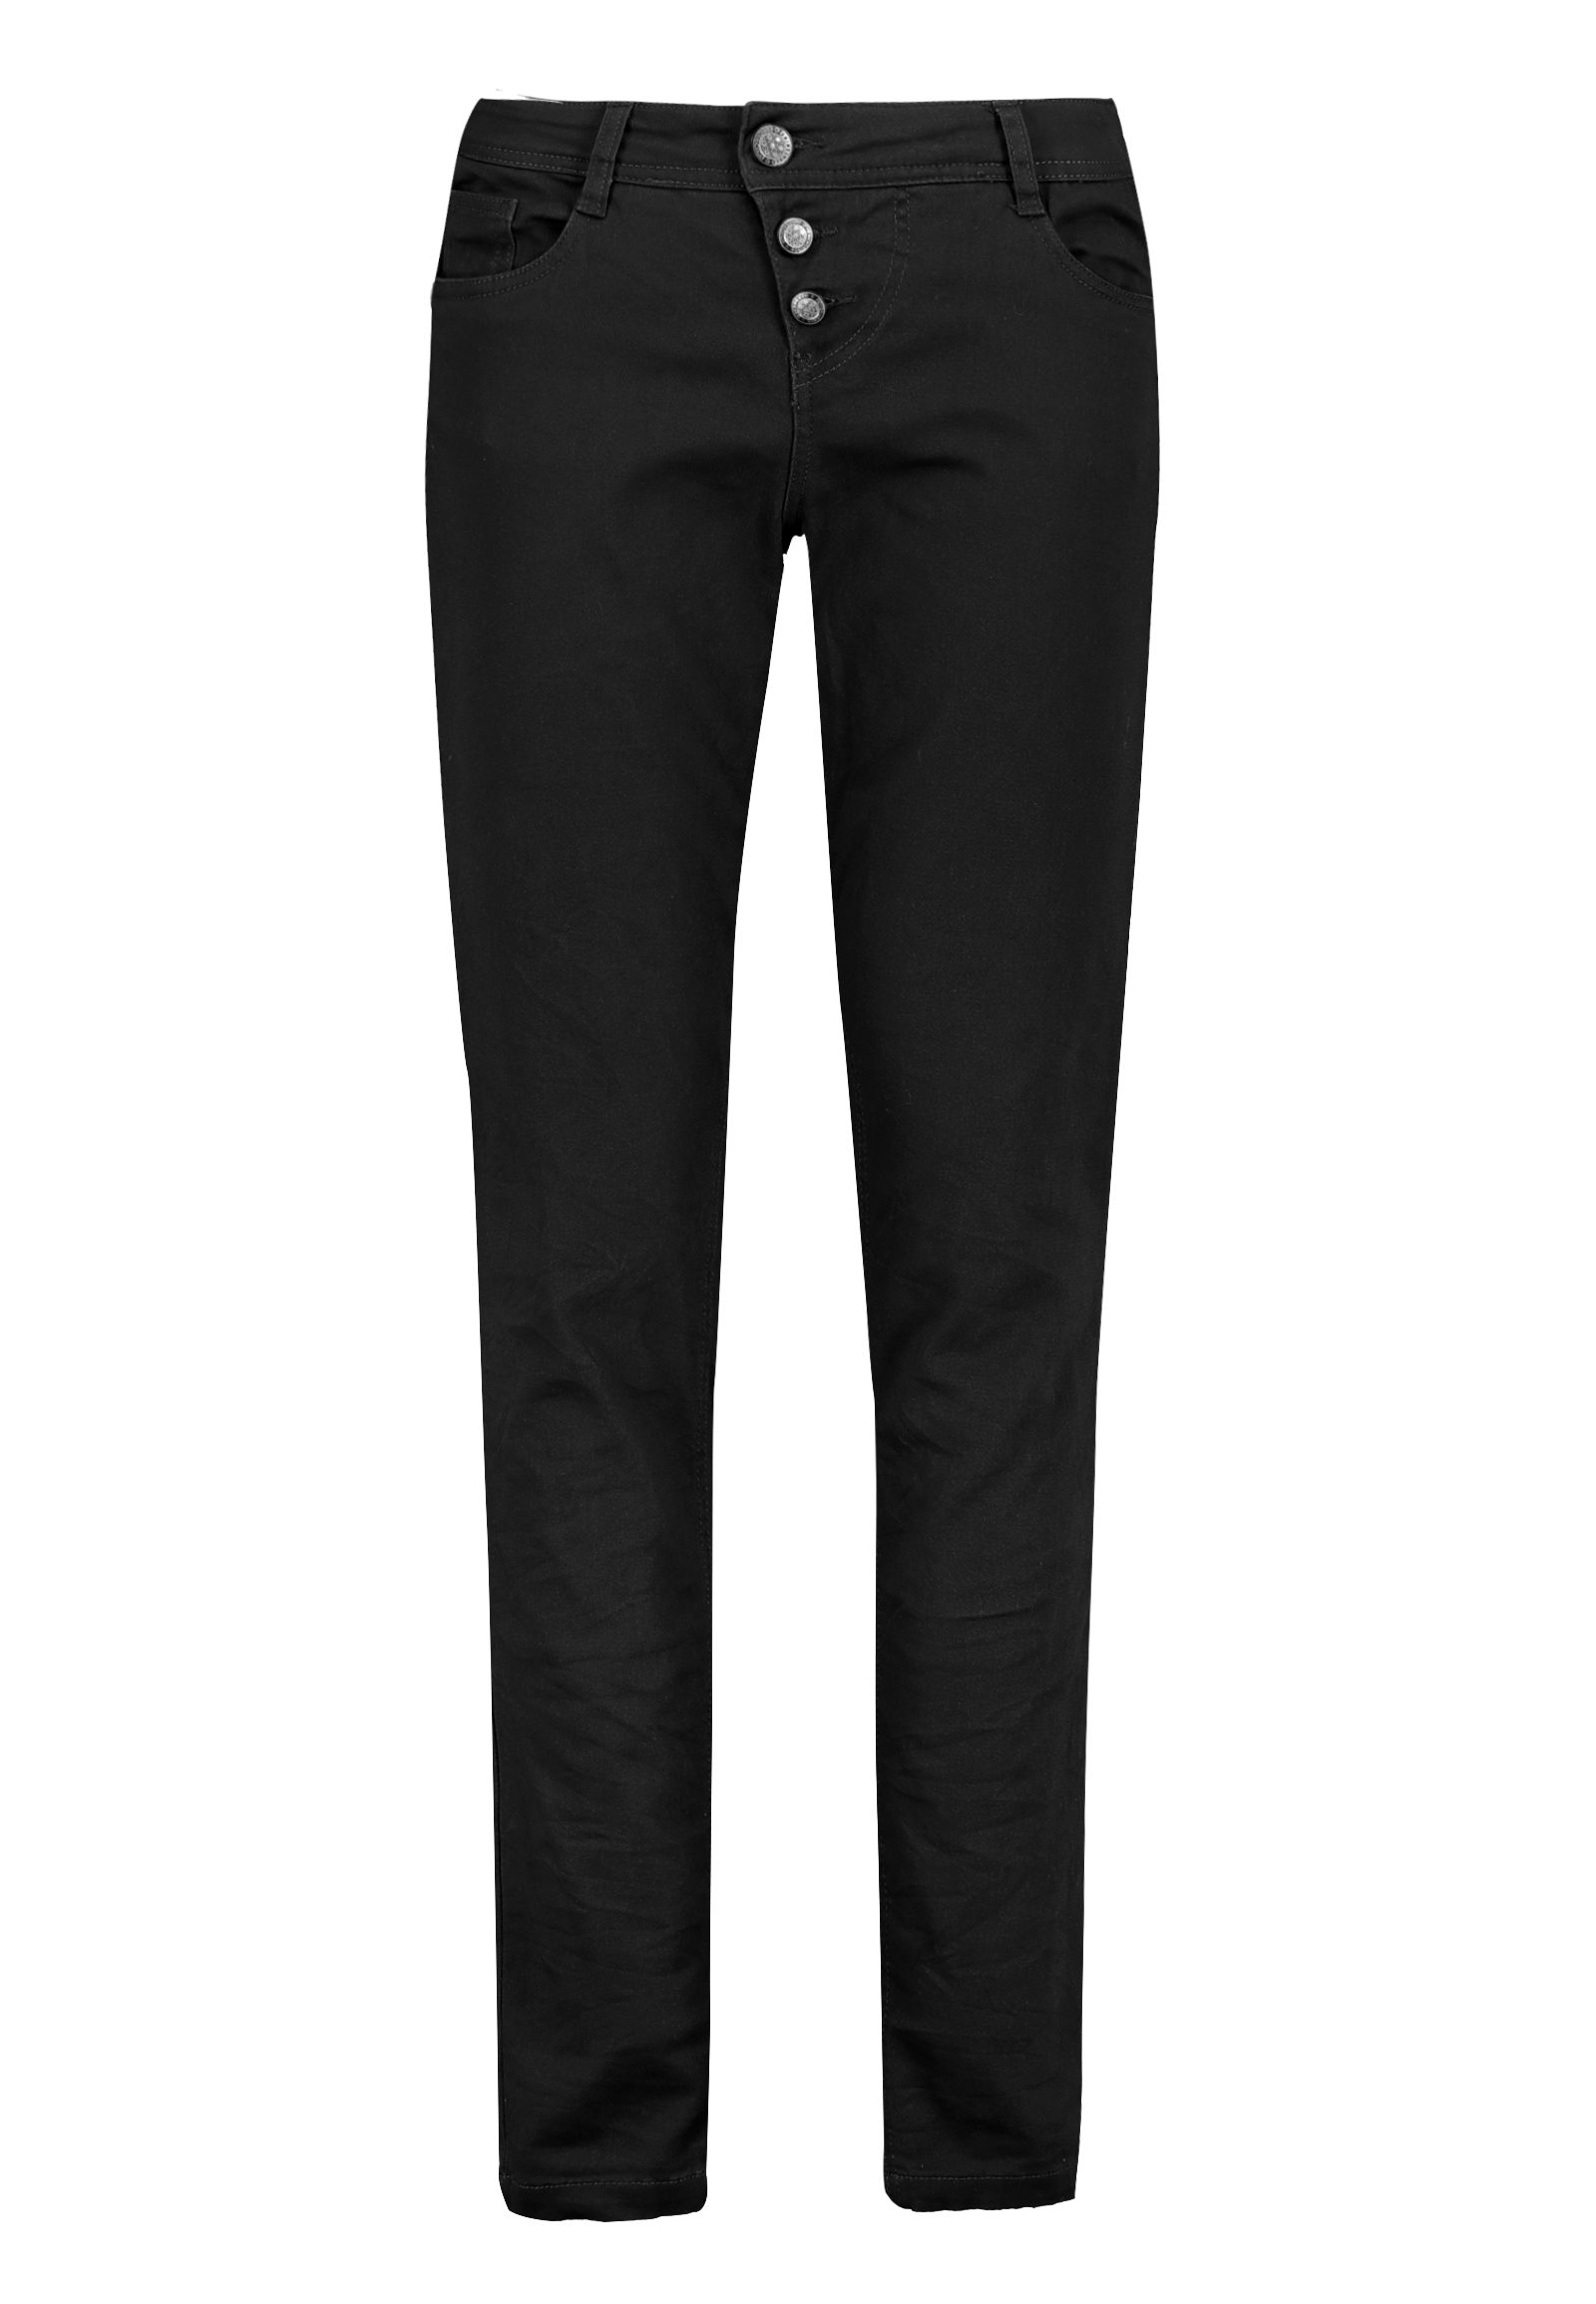 Hosen - Skinny Twillhose mit Knopfleiste › Eight2Nine › schwarz  - Onlineshop FASHION5